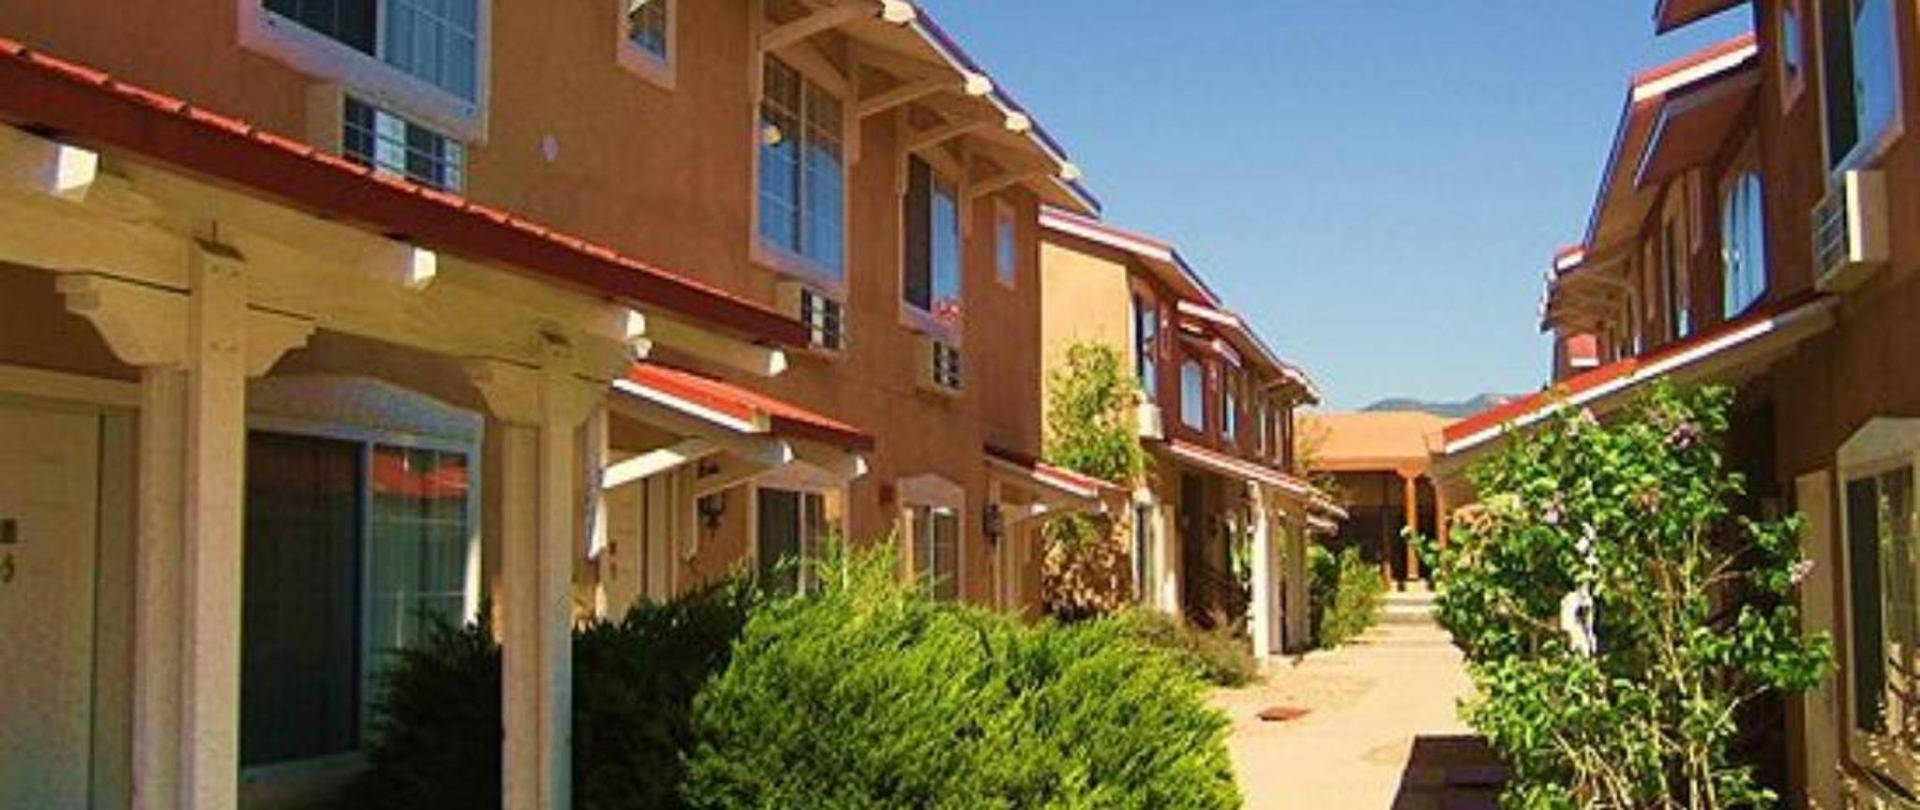 The Santa Fe Suites Official Site Condo Hotels In Santa Fe